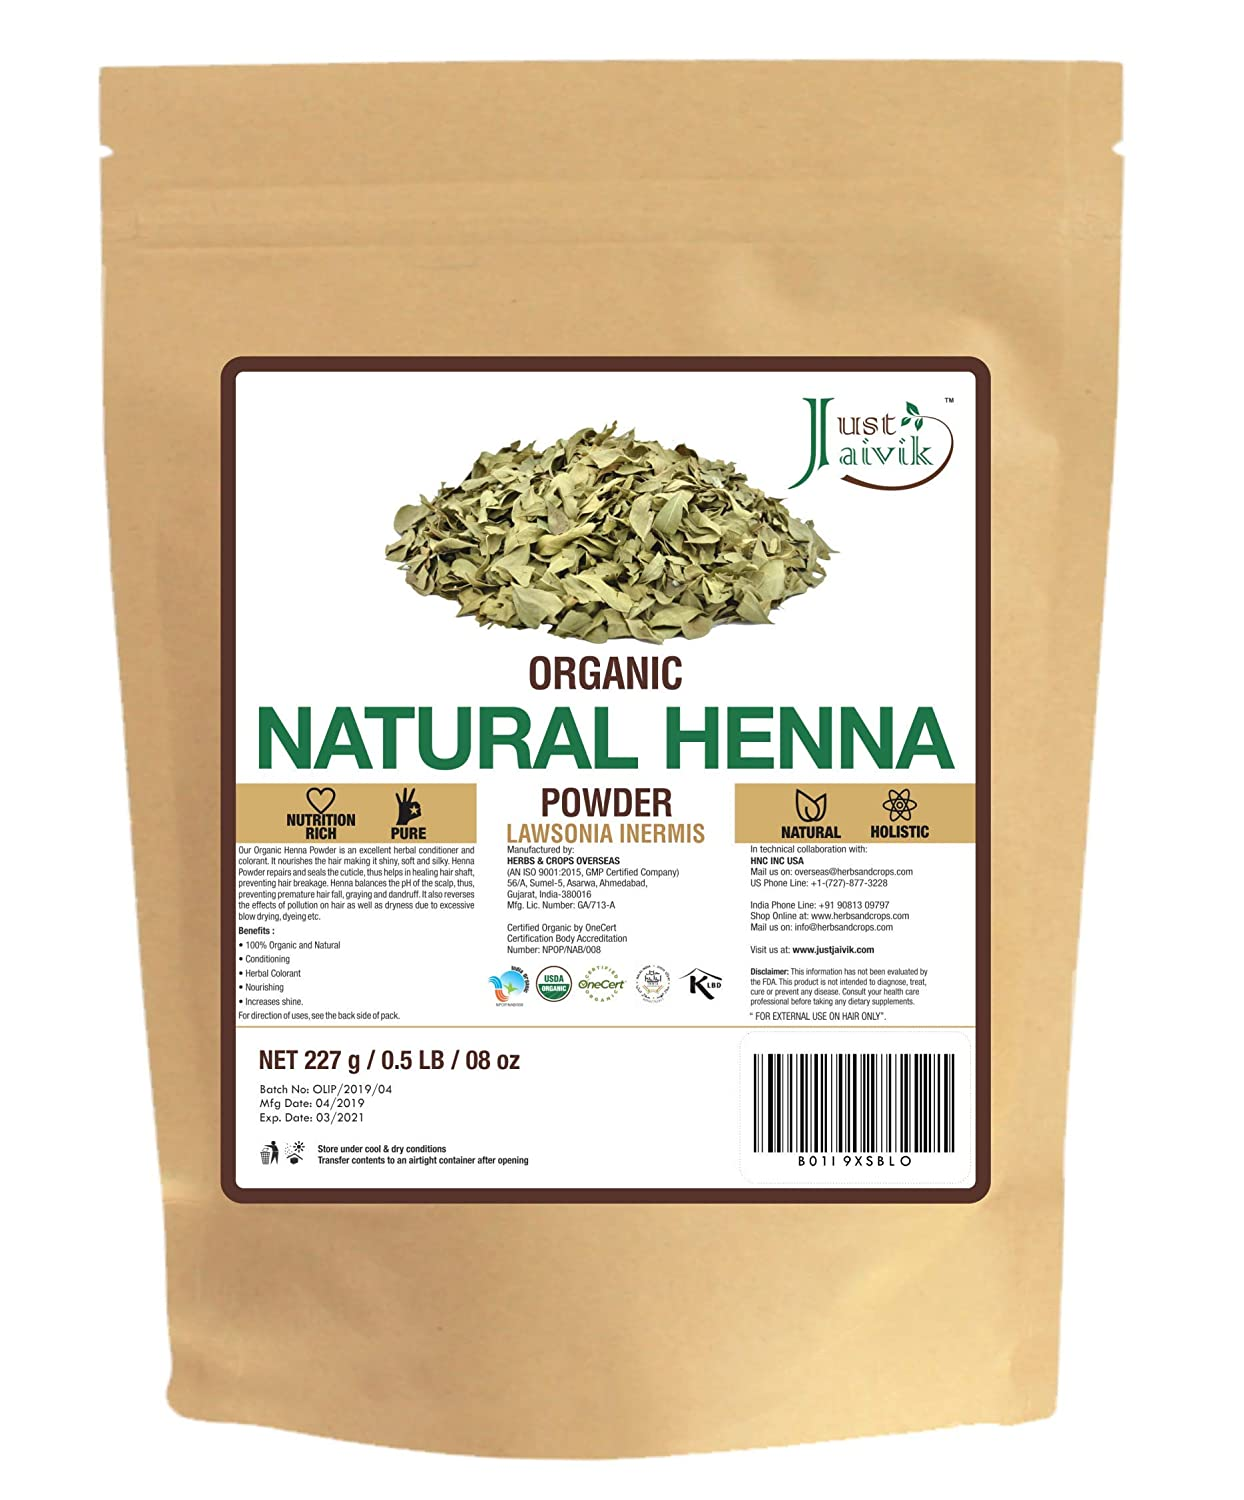 Just Jaivik 100% Organic USDA Certified Henna Powder (Lawsonia Inermis) For Hair Certified by OneCert Asia for USDA Organic Standard 227 Gms / 0.5 LB/ 8 Oz , 100% Natural , No chemical or additive.